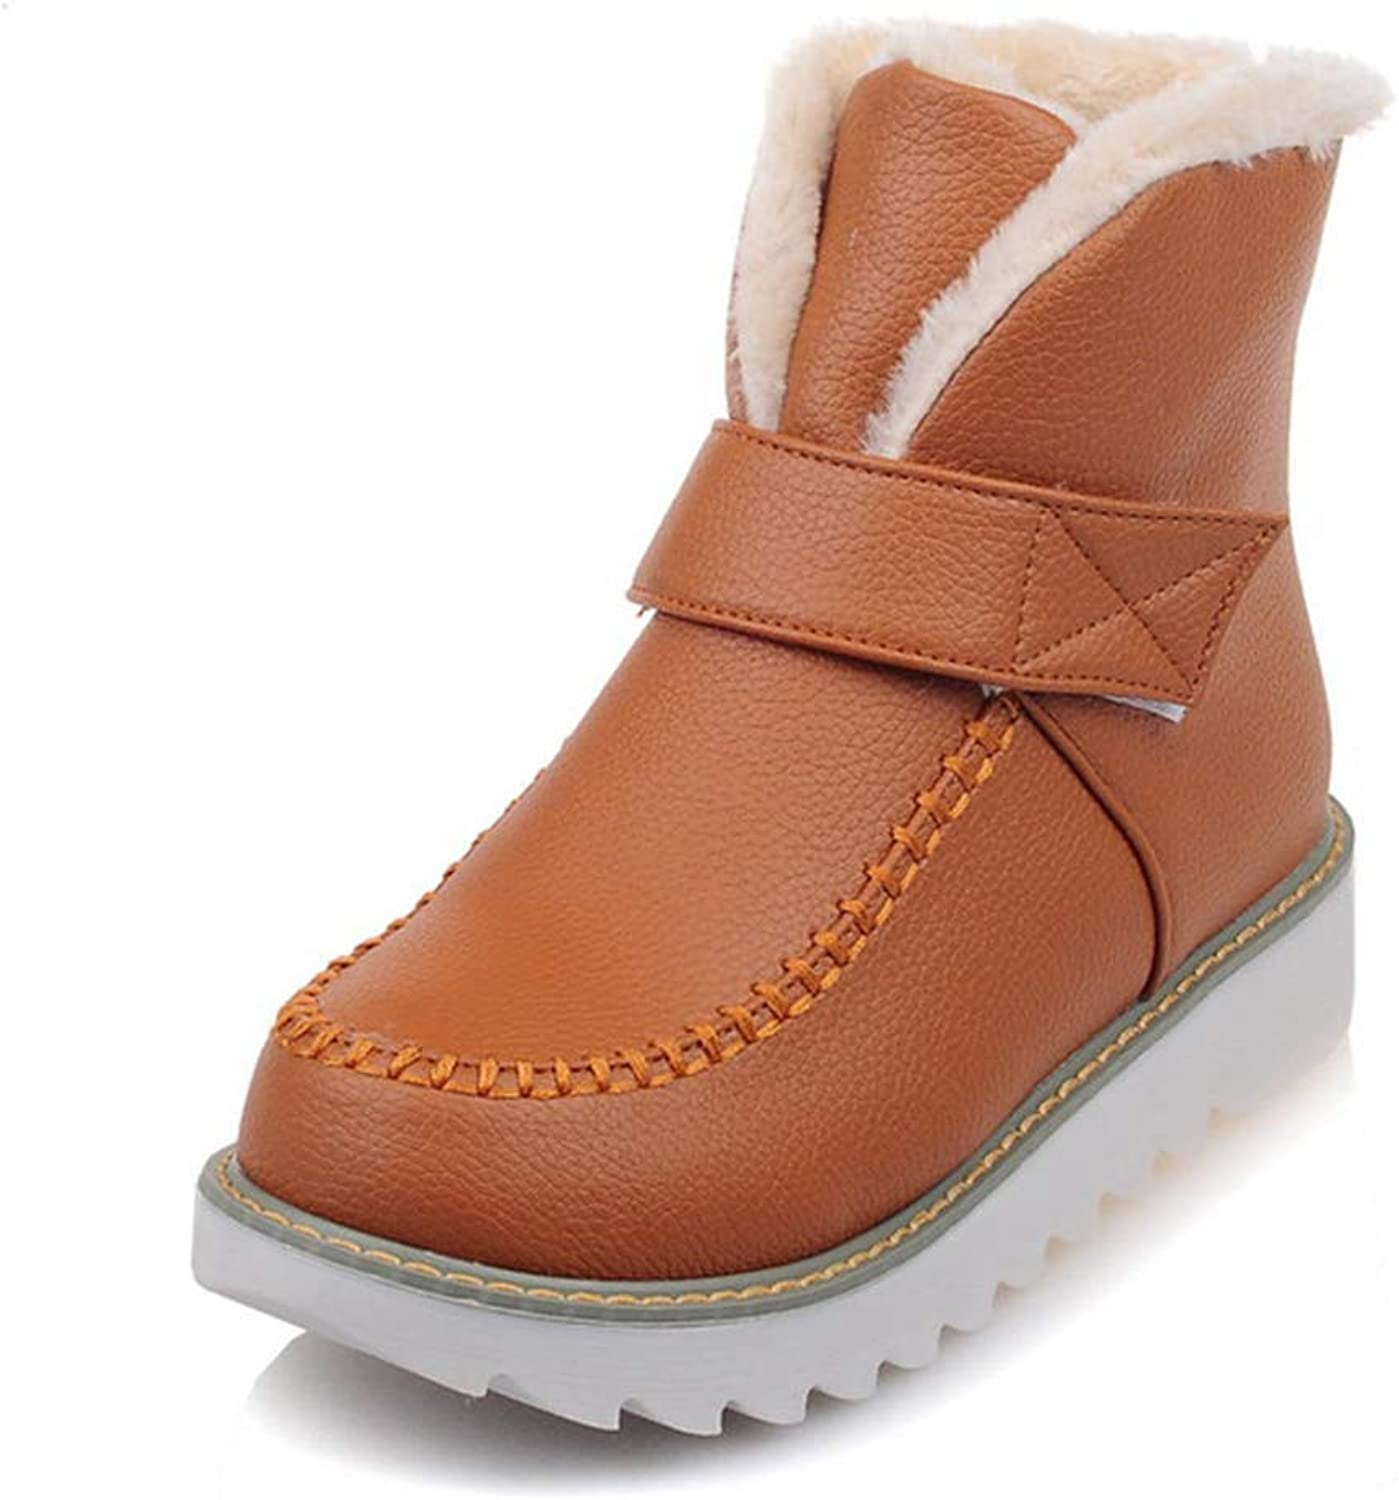 T-JULY Leisure Warm Plush Winter Snow Boots Women shoes Wholesale Dropship Girls Waterproof Ankle Boots